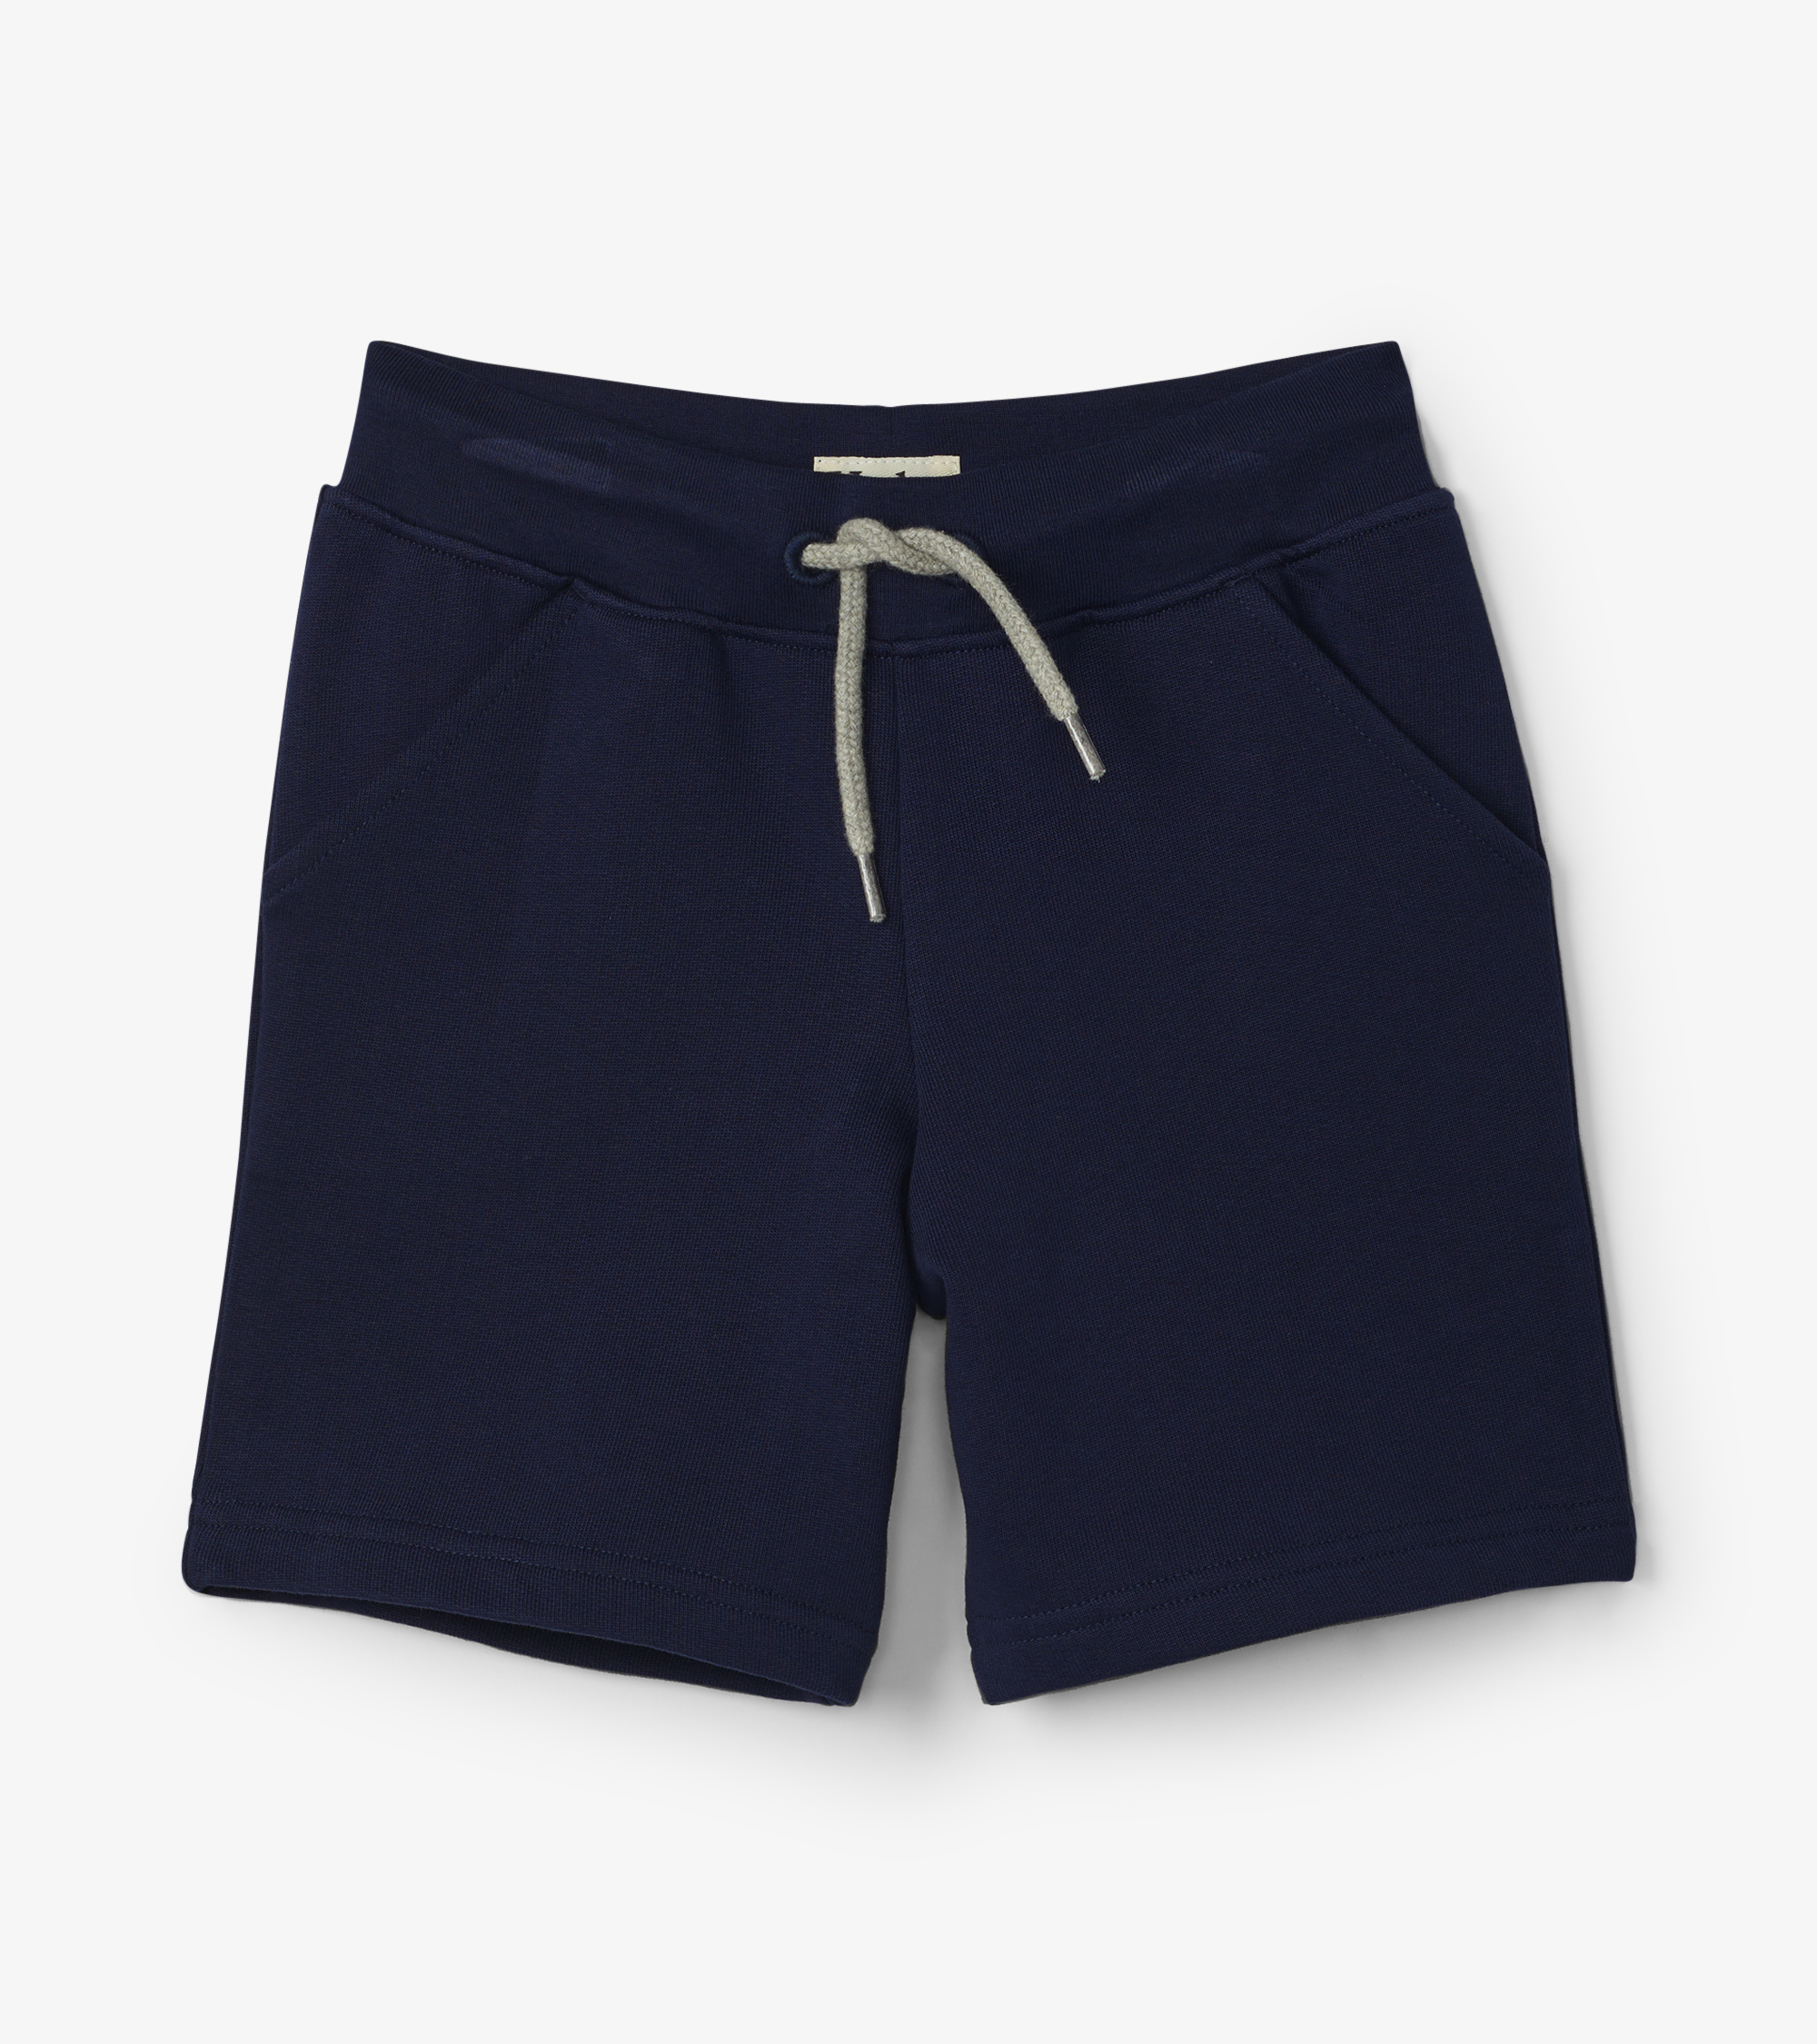 NOW £13 Hatley Terry Shorts Navy (was £19)